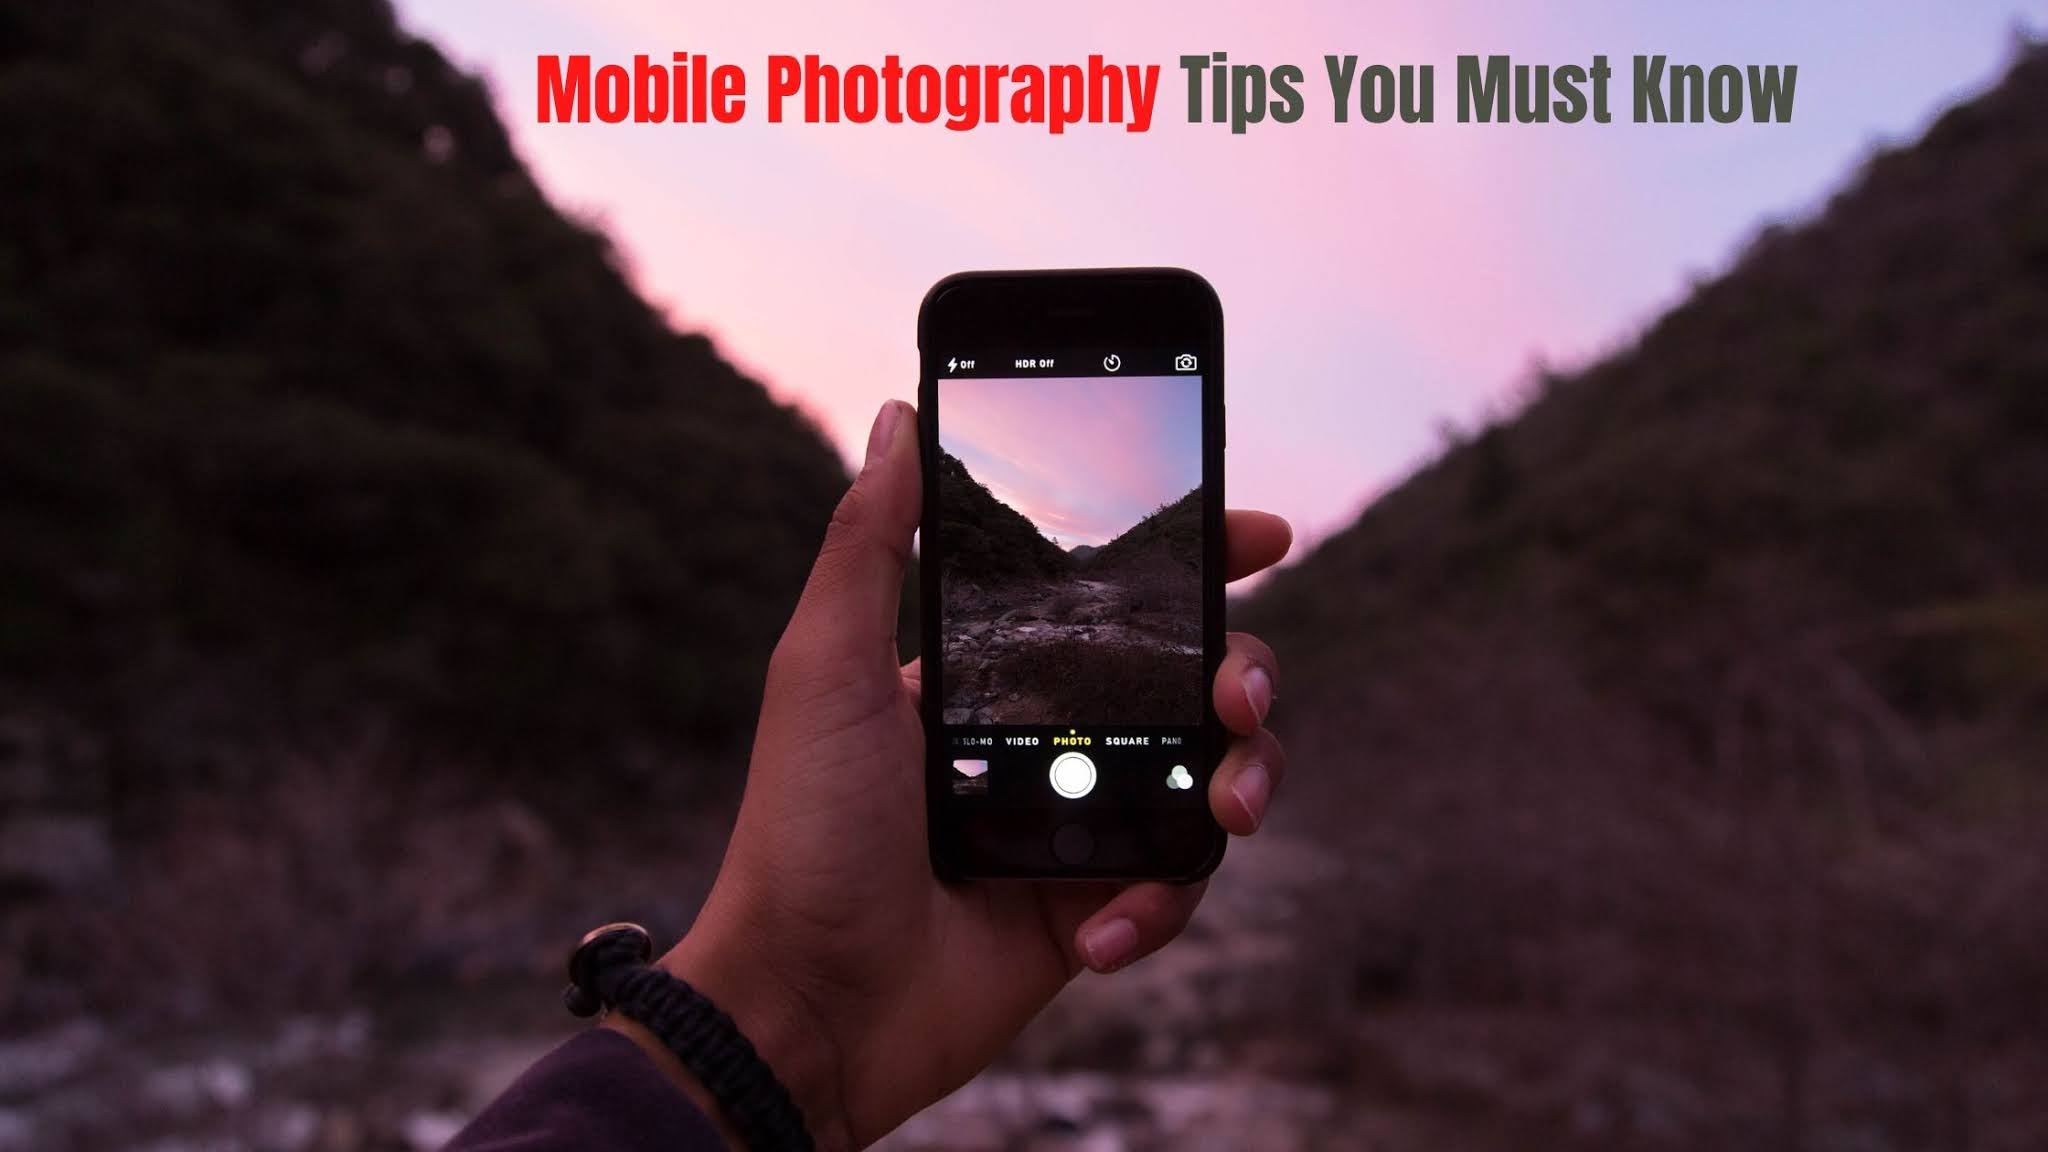 Mobile photography tips you must know